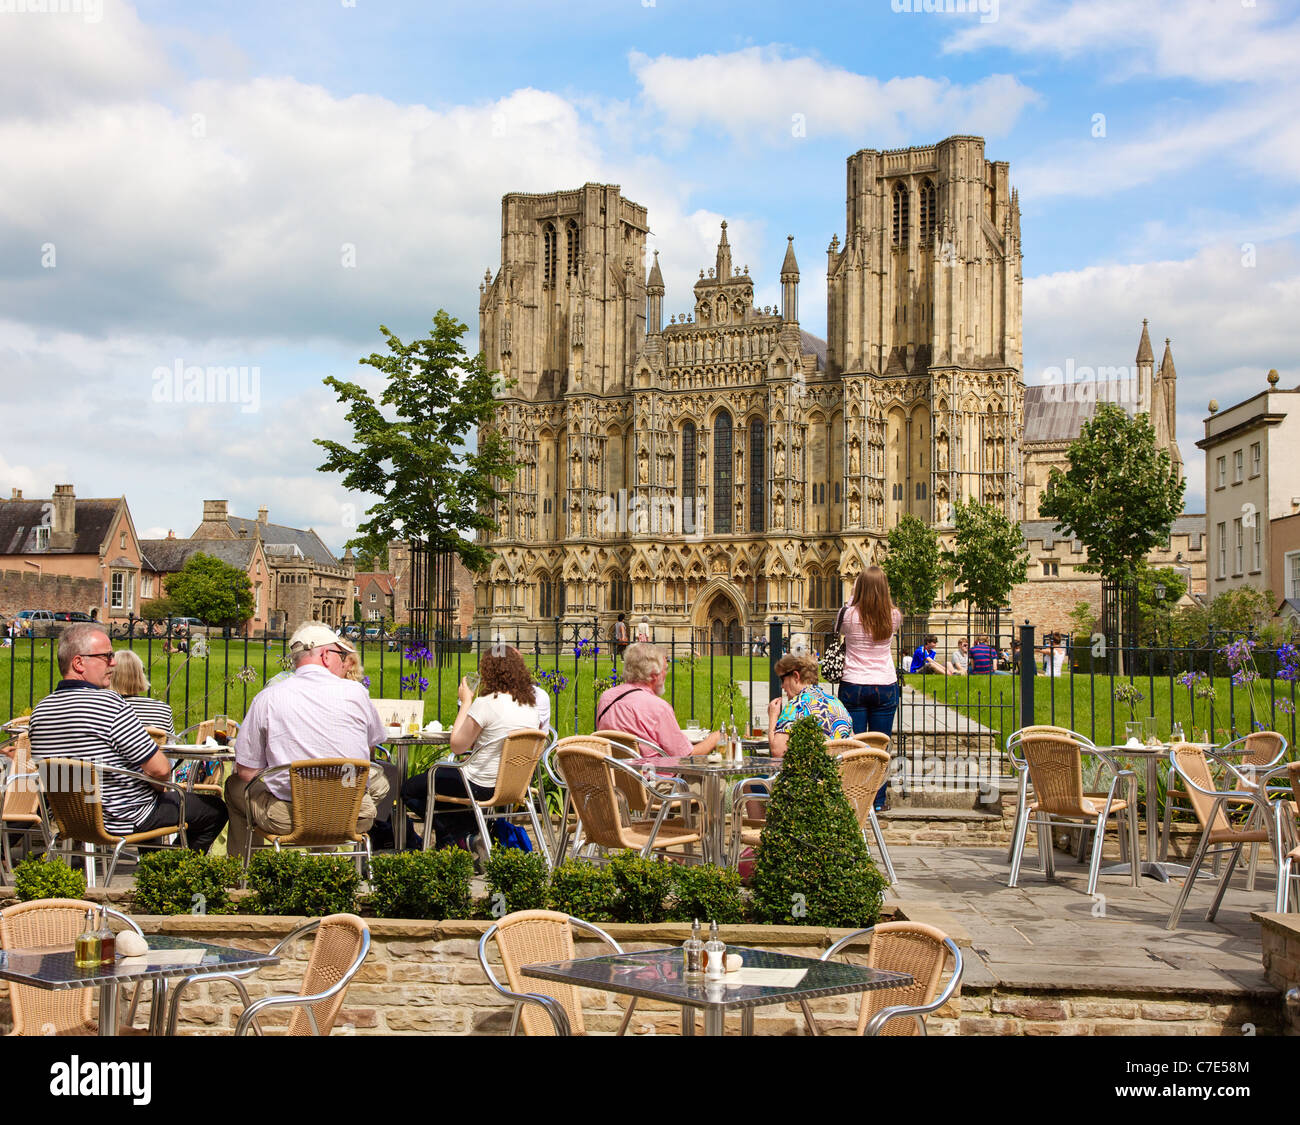 Terrace of the Swan Hotel in Wells Somerset enjoying a fine view of the cathedral - Stock Image